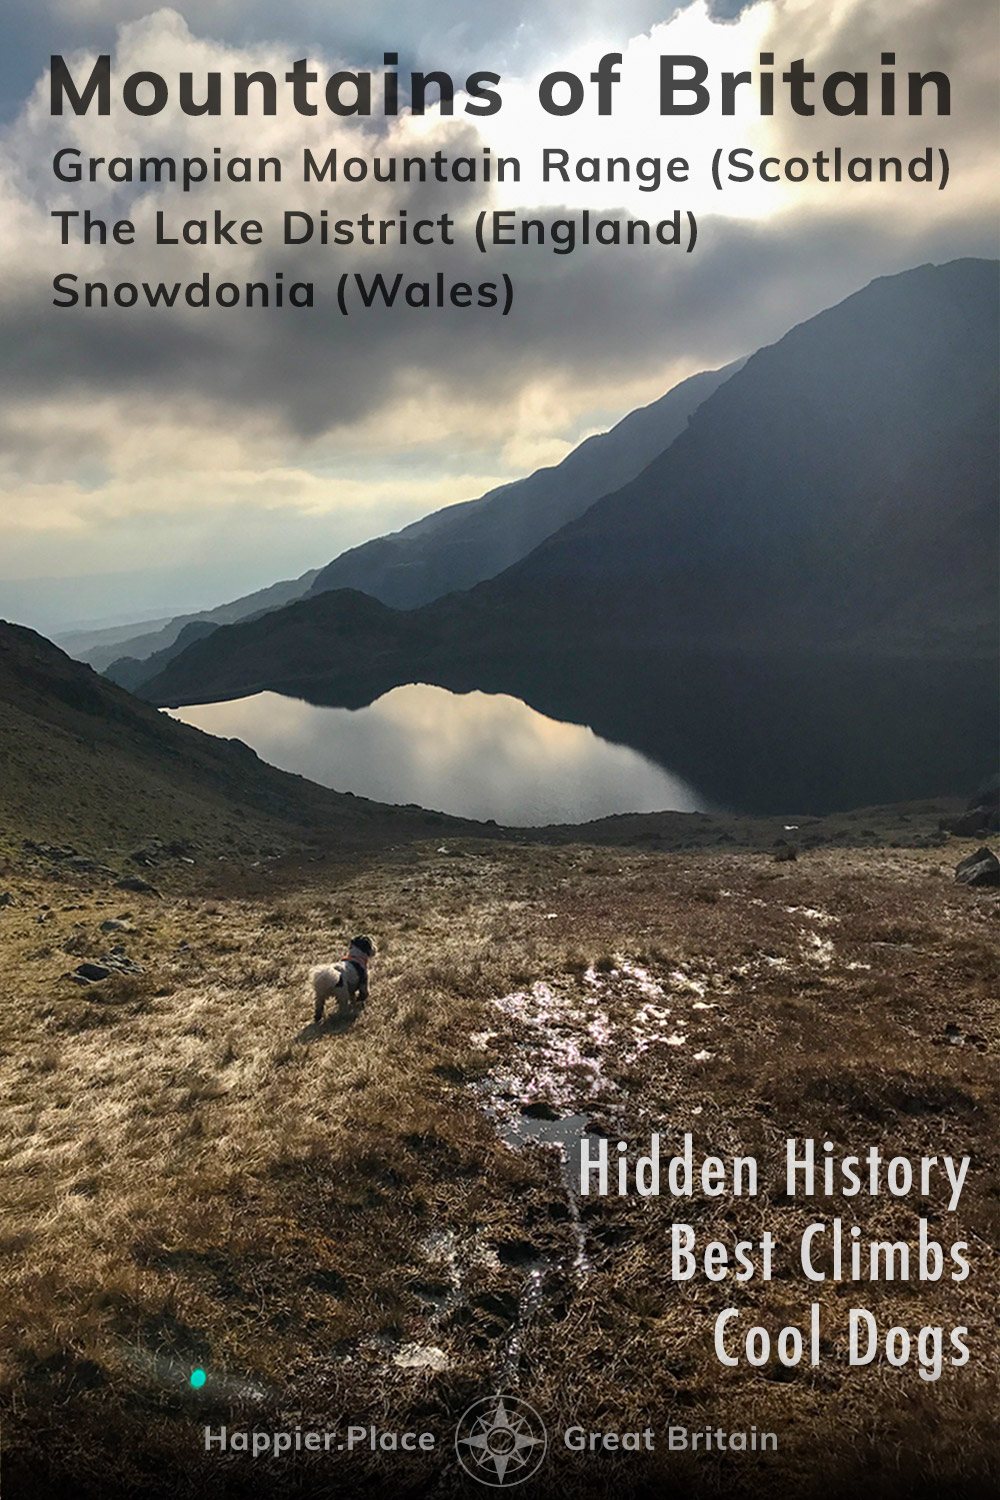 Hiking with dogs, mountain lake view, Mountains of Britain, Hidden History and Best Climbs, Grampian Mountain Range in Scotland, The Lake District in England, Snowdonia in Wales, HappierPlace